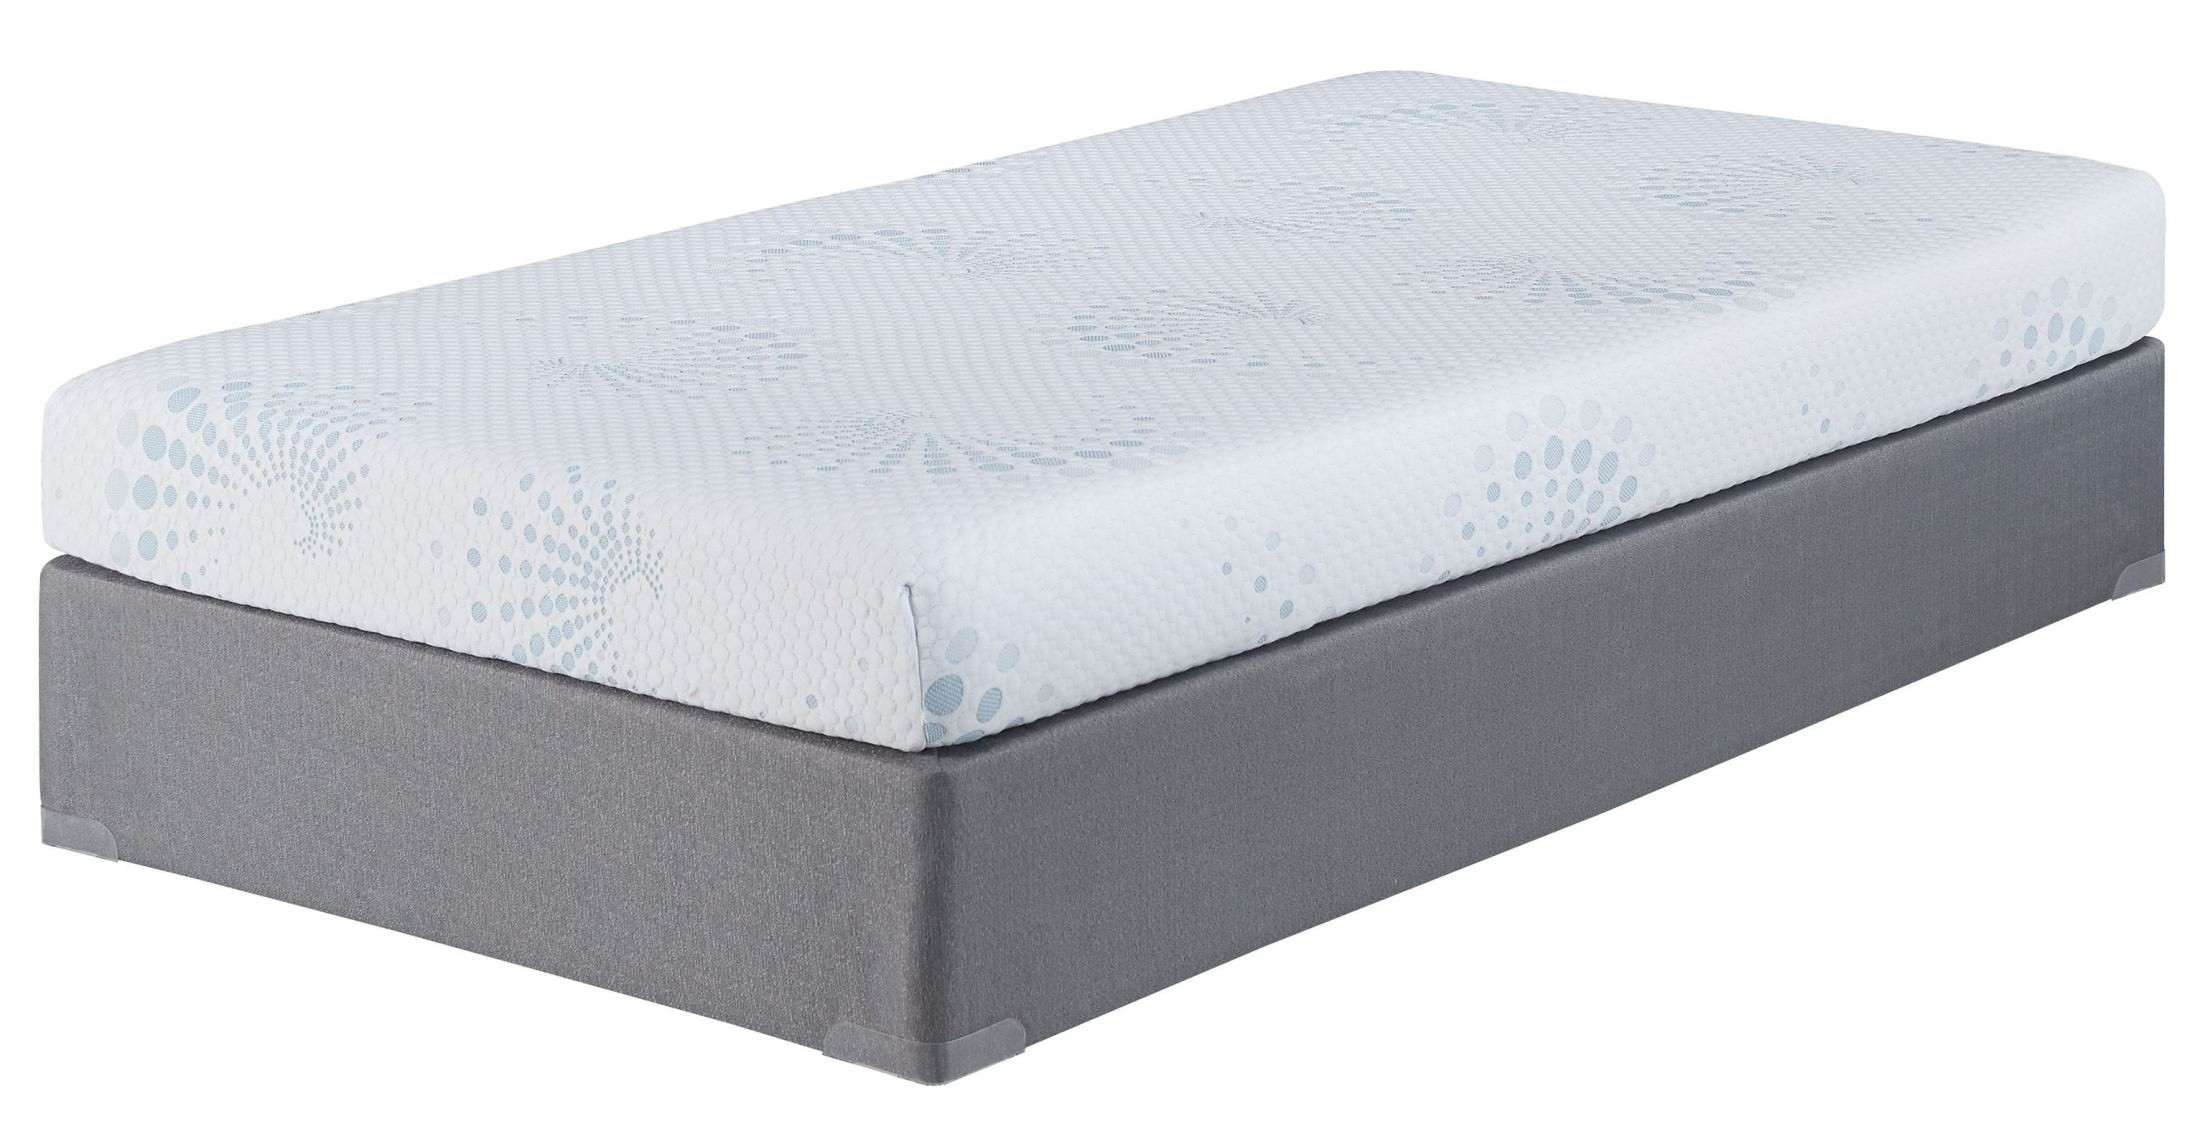 Kids Bedding Full Memory Foam Mattress M80221 Ashley